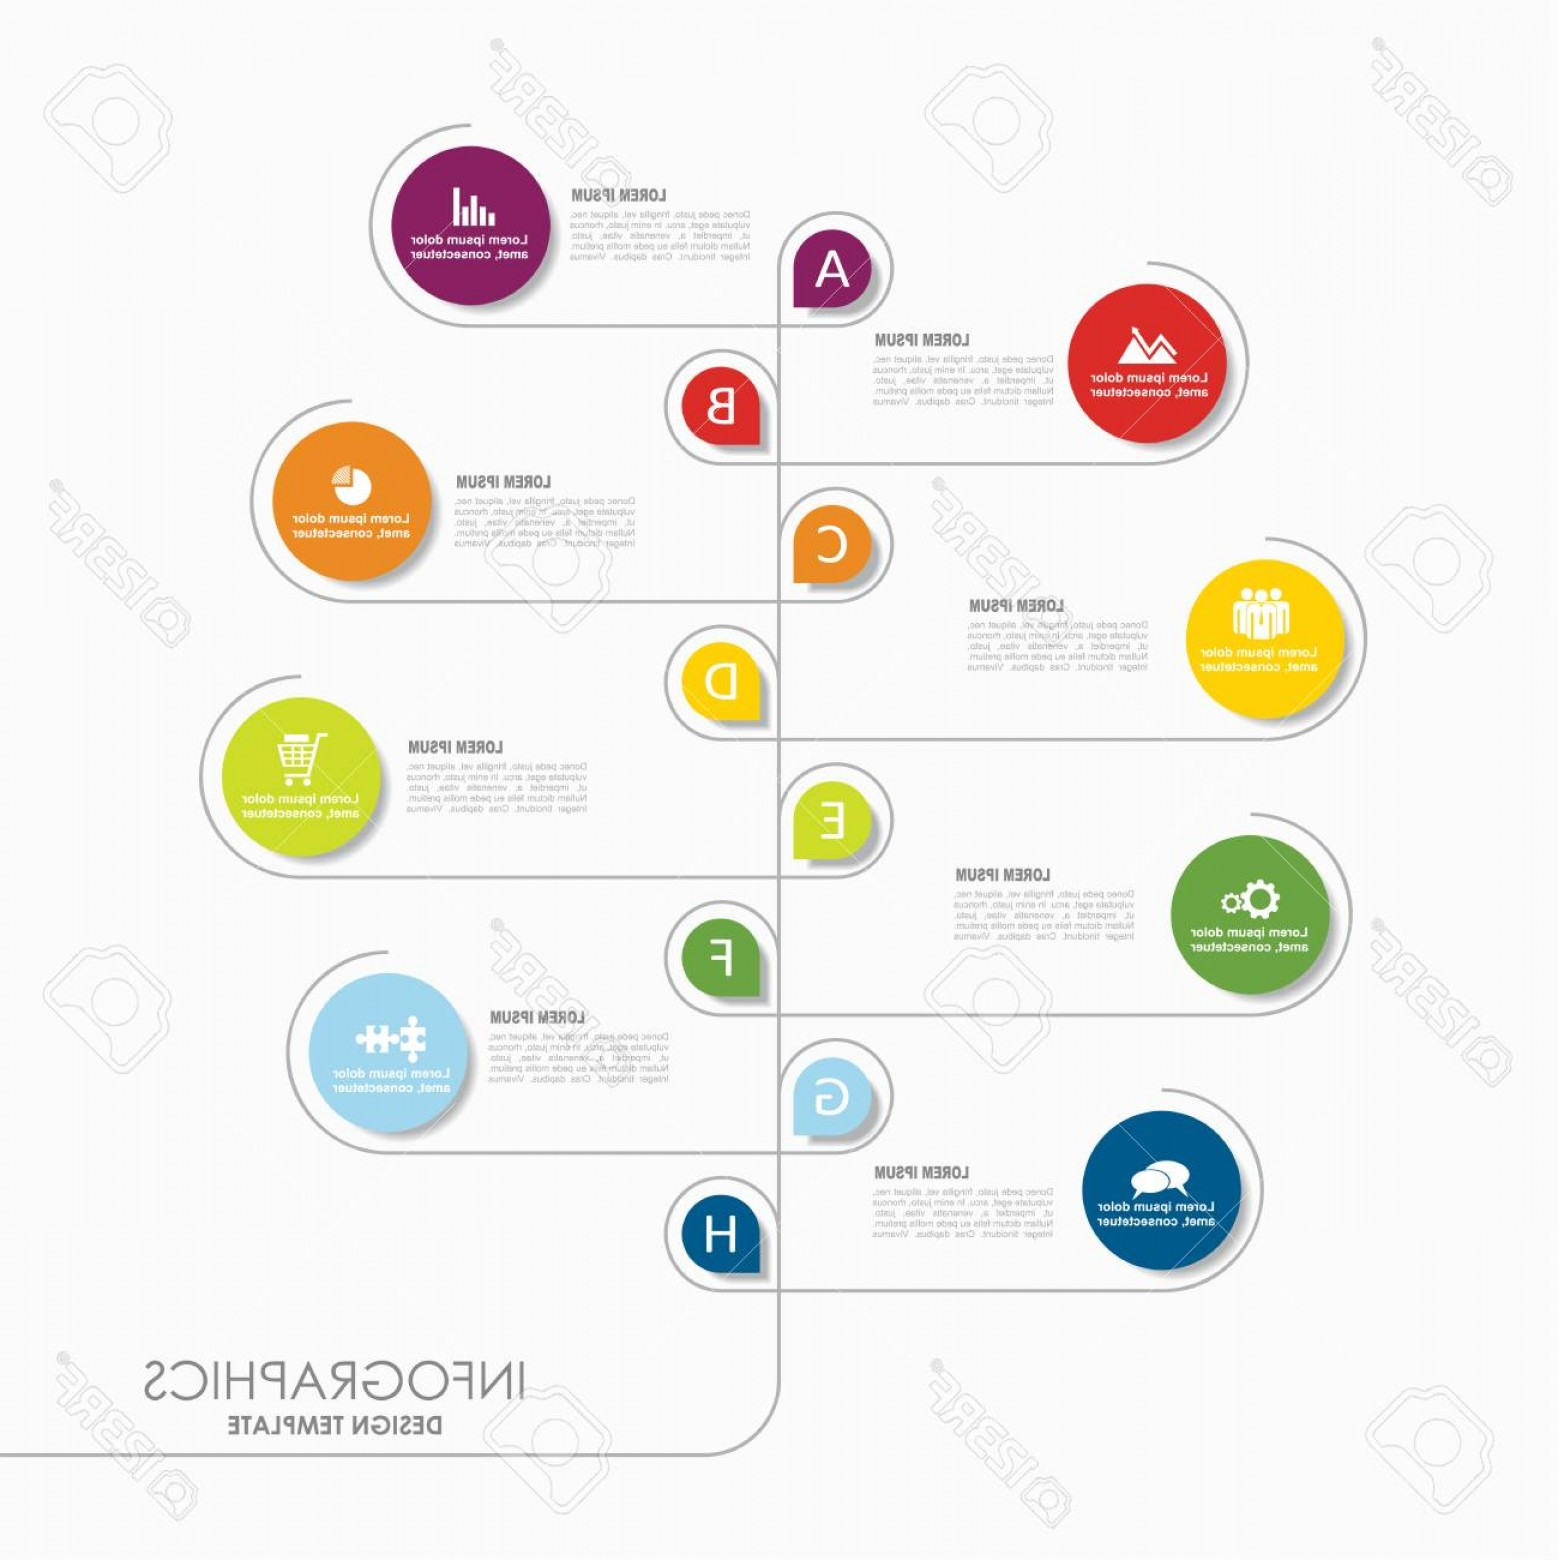 What Are Vectors Used For: Photostock Vector Infographic Template Vector Illustration Can Be Used For Workflow Layout Diagram Business Step Optio